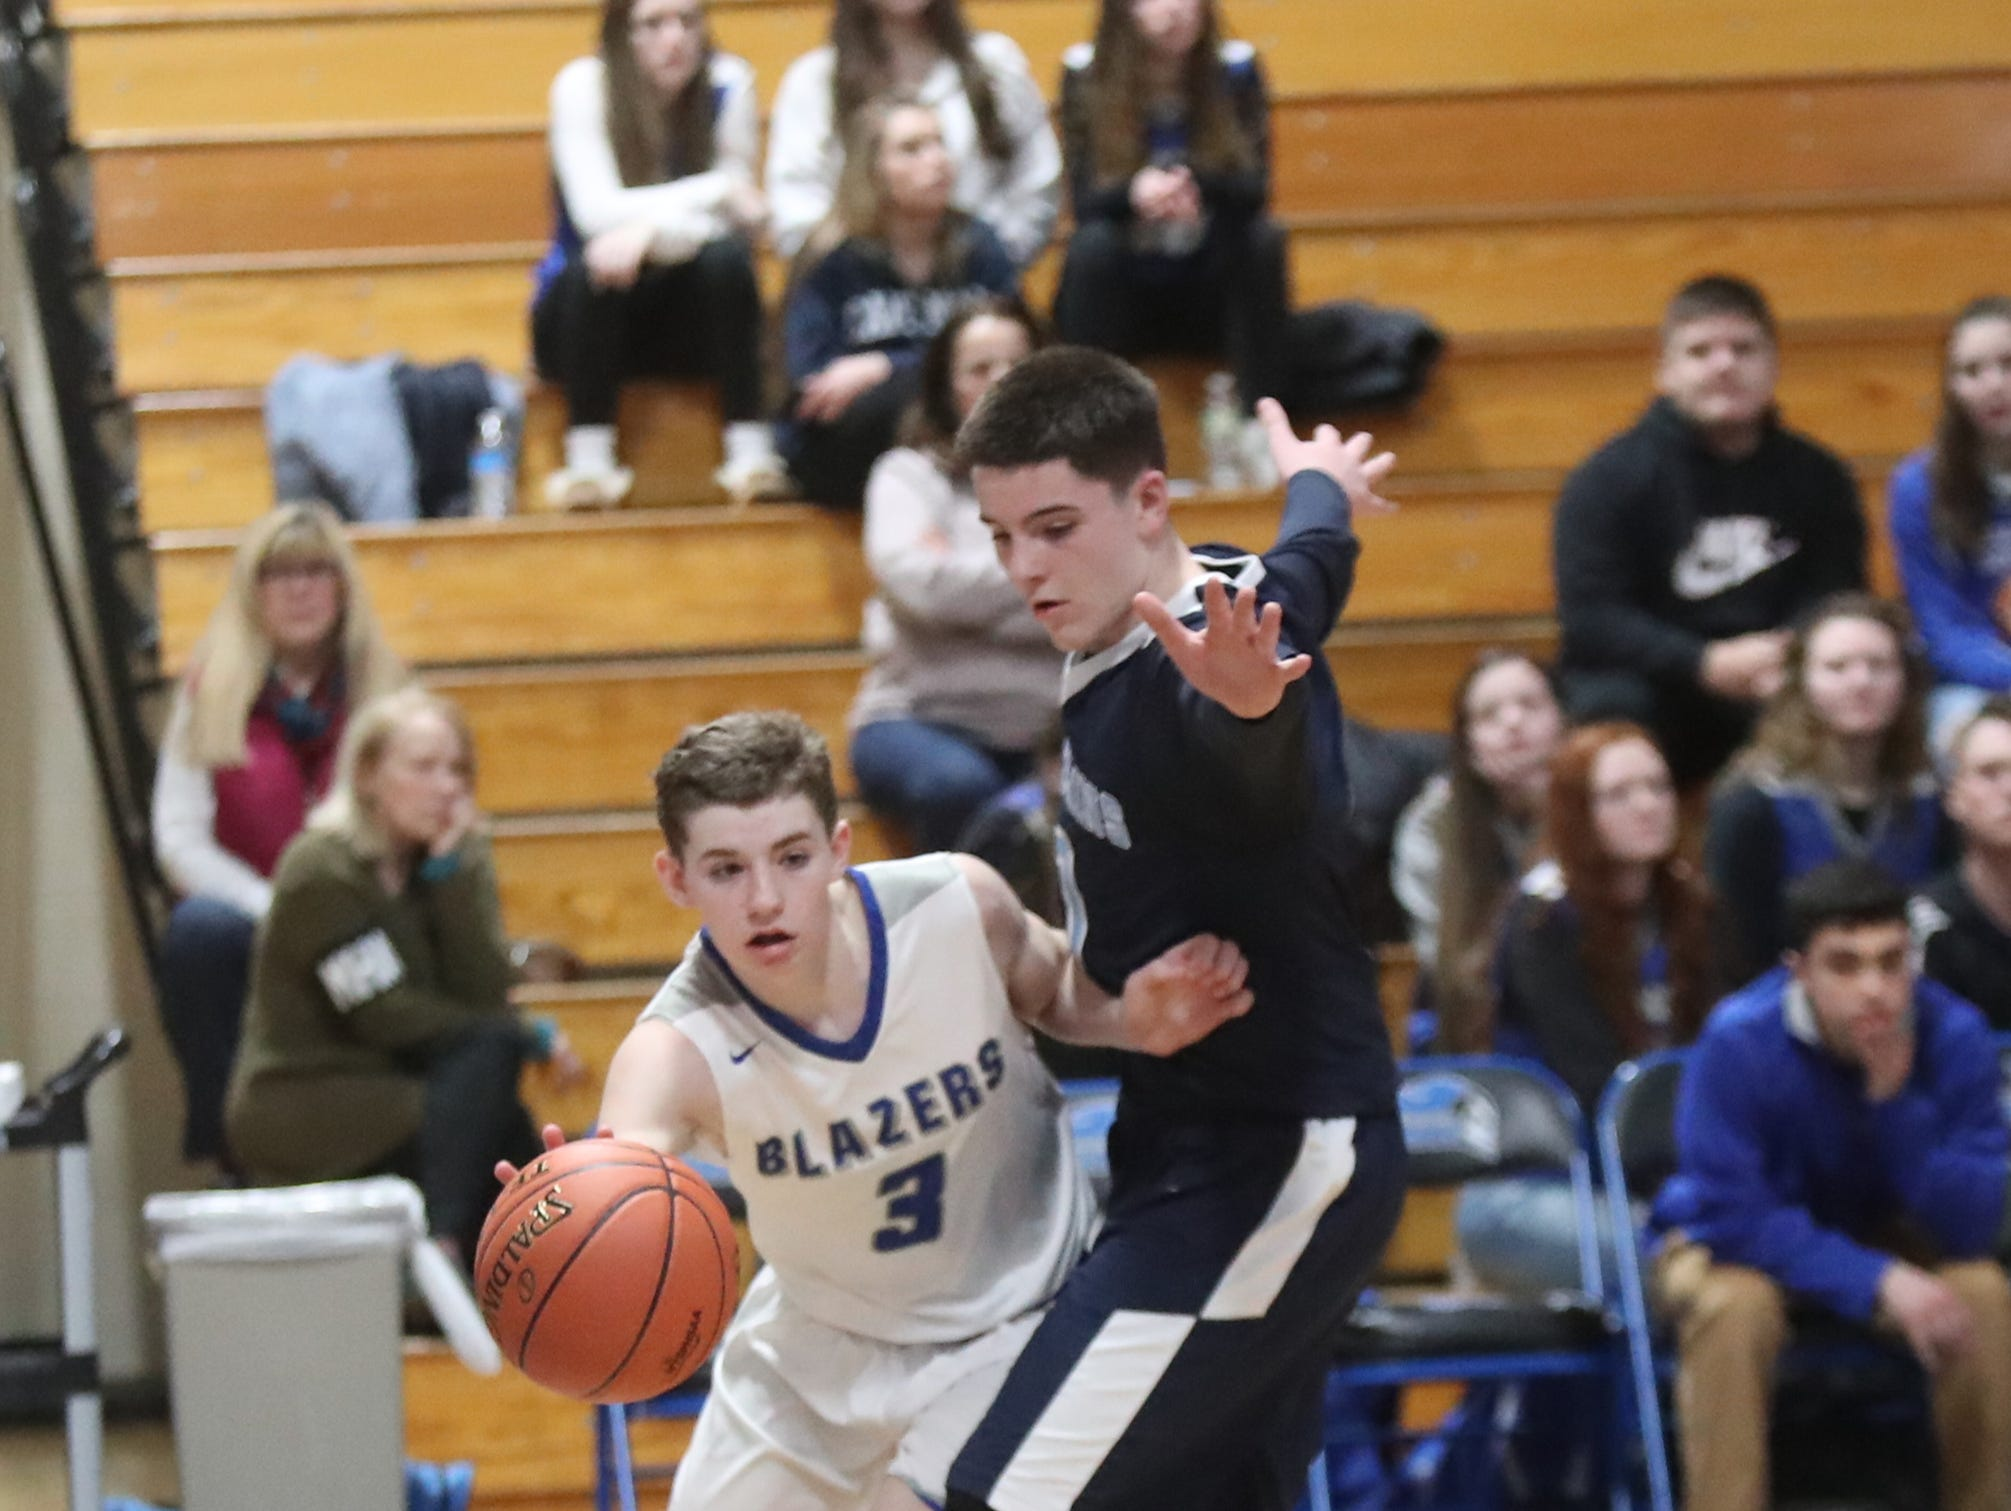 Sebastian Kopilak (3) works the baseline in the boys Class C section final basketball game against Pine Plains at Mount St. Mary College in Newburgh on Thursday, February 28, 2019.